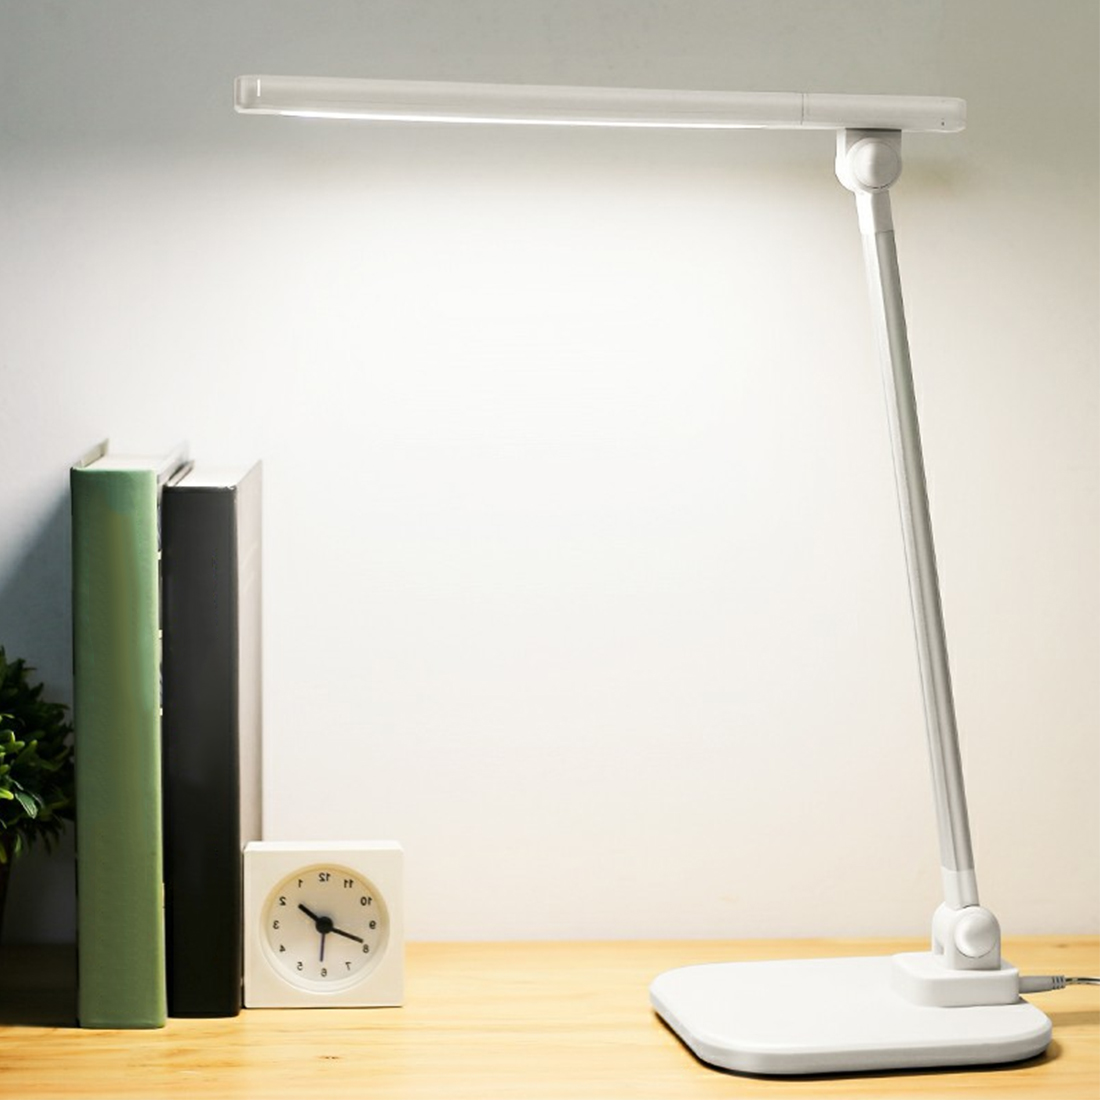 1pc 5W USB Charging Port Touch-Sensitive Controller Table Lamp 36 LEDs Desk Lamp Foldable Dimmable Rotatable Eye Care LED new led table lamp 12w foldable 7 levels dimmer rotatable eye care led desk lamp touch sensitive controller usb eu us plug